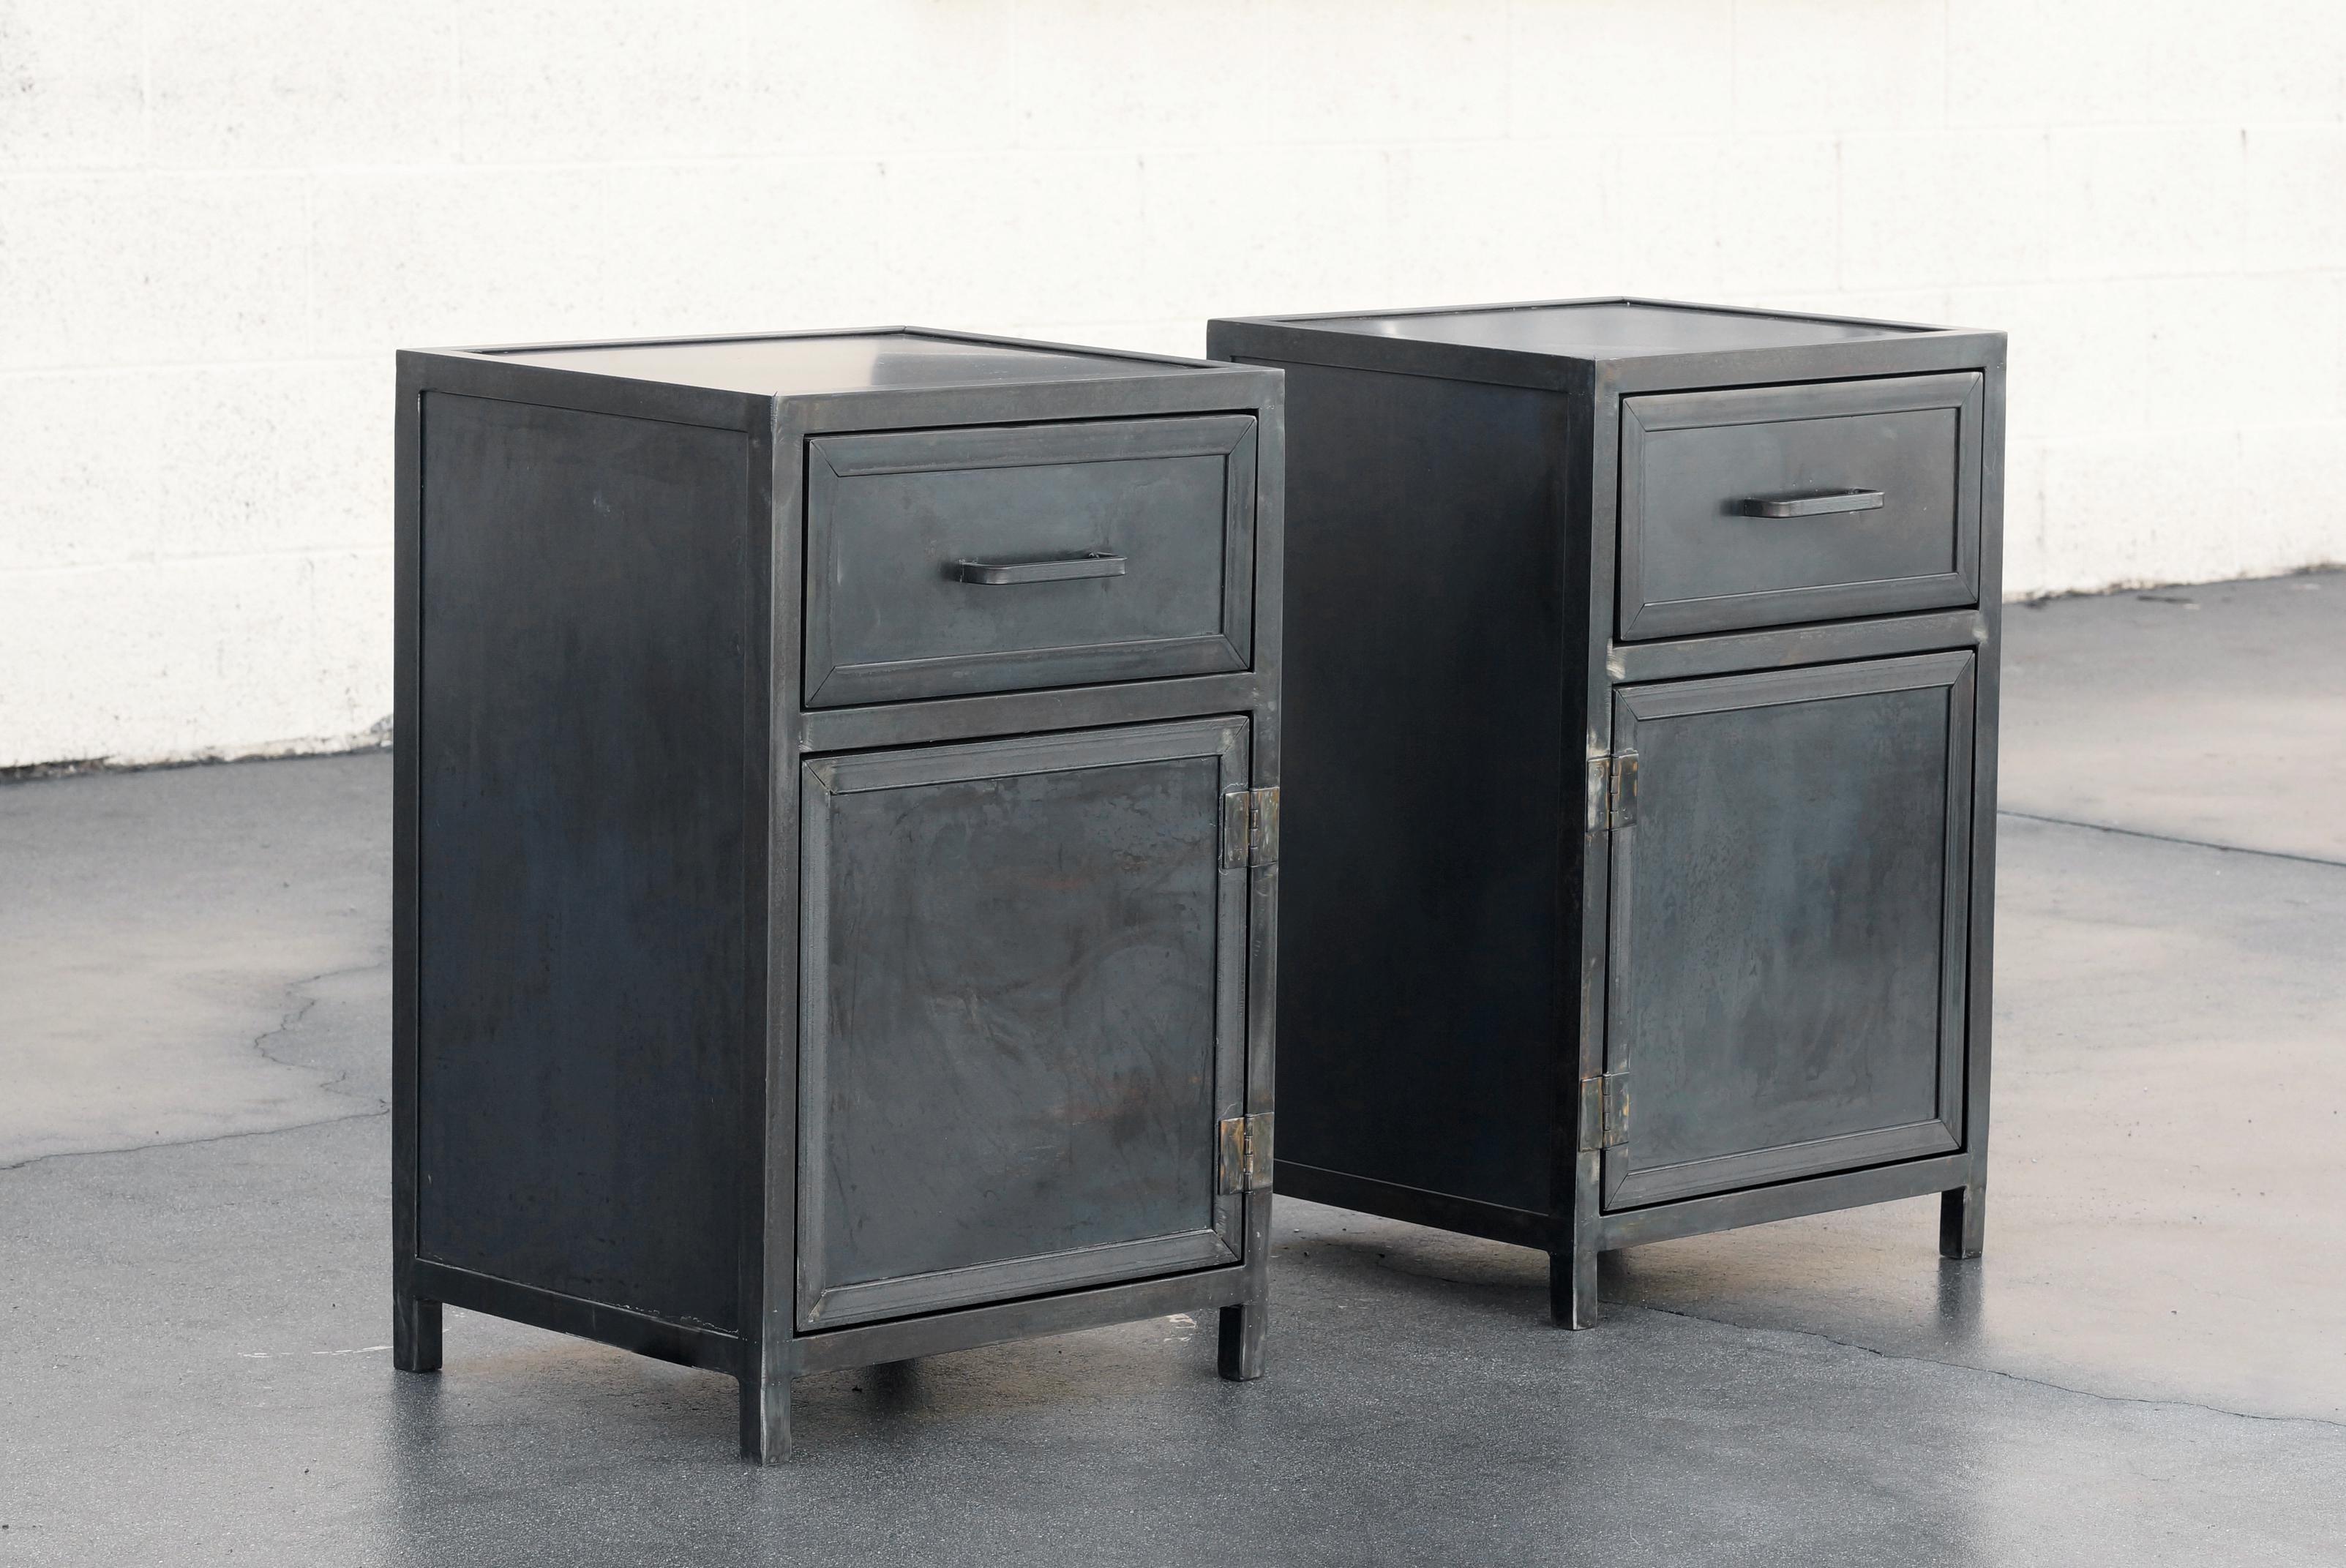 Custom Industrial Steel Nightstand Lowboy Cabinets By Rehab Vintage  Interiors, Available Now And Made To